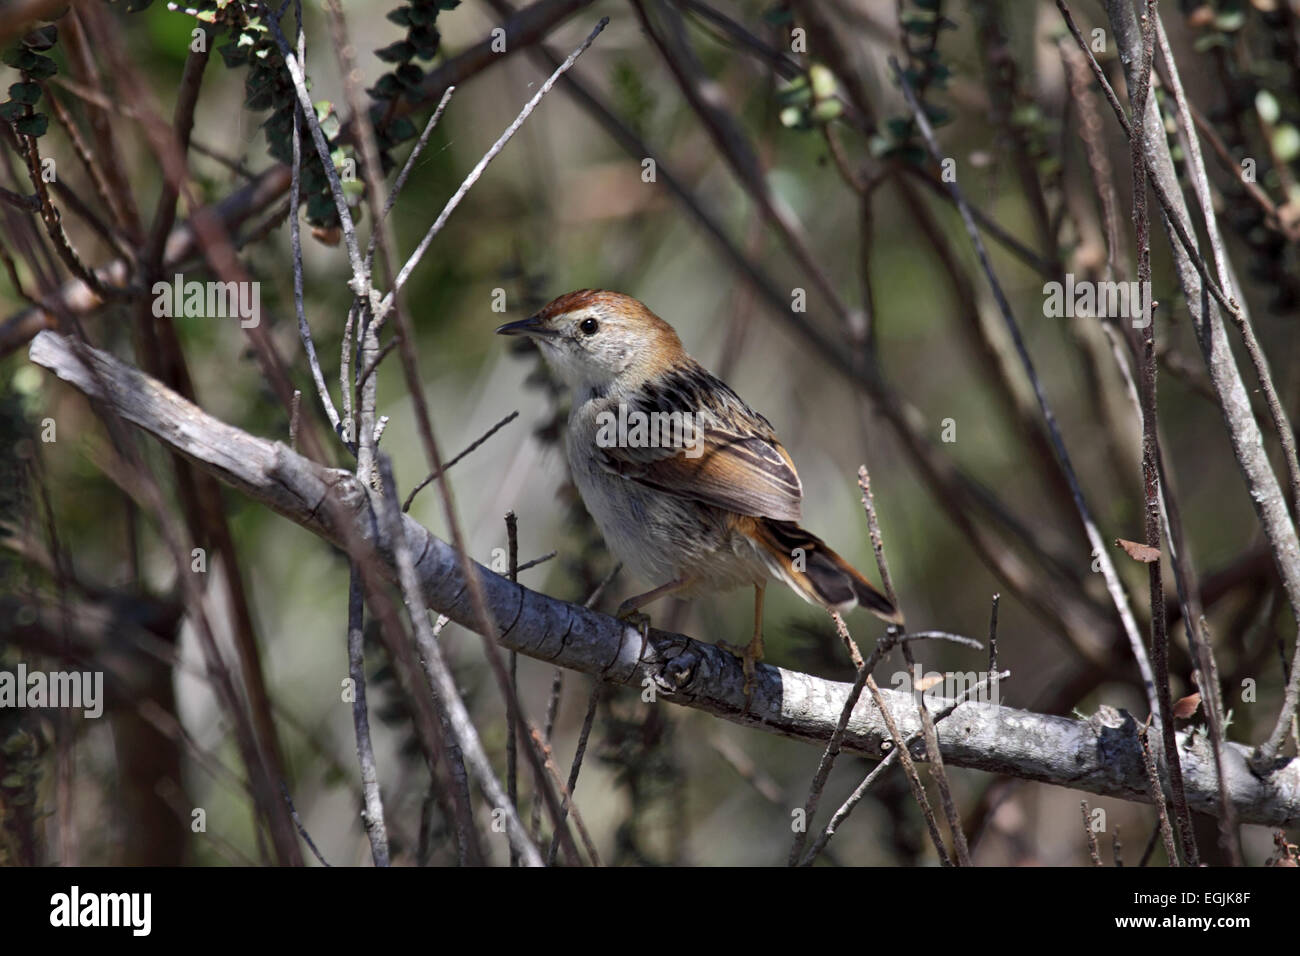 Levaillant's cisticola perched on branch amongst scrub in South Africa - Stock Image